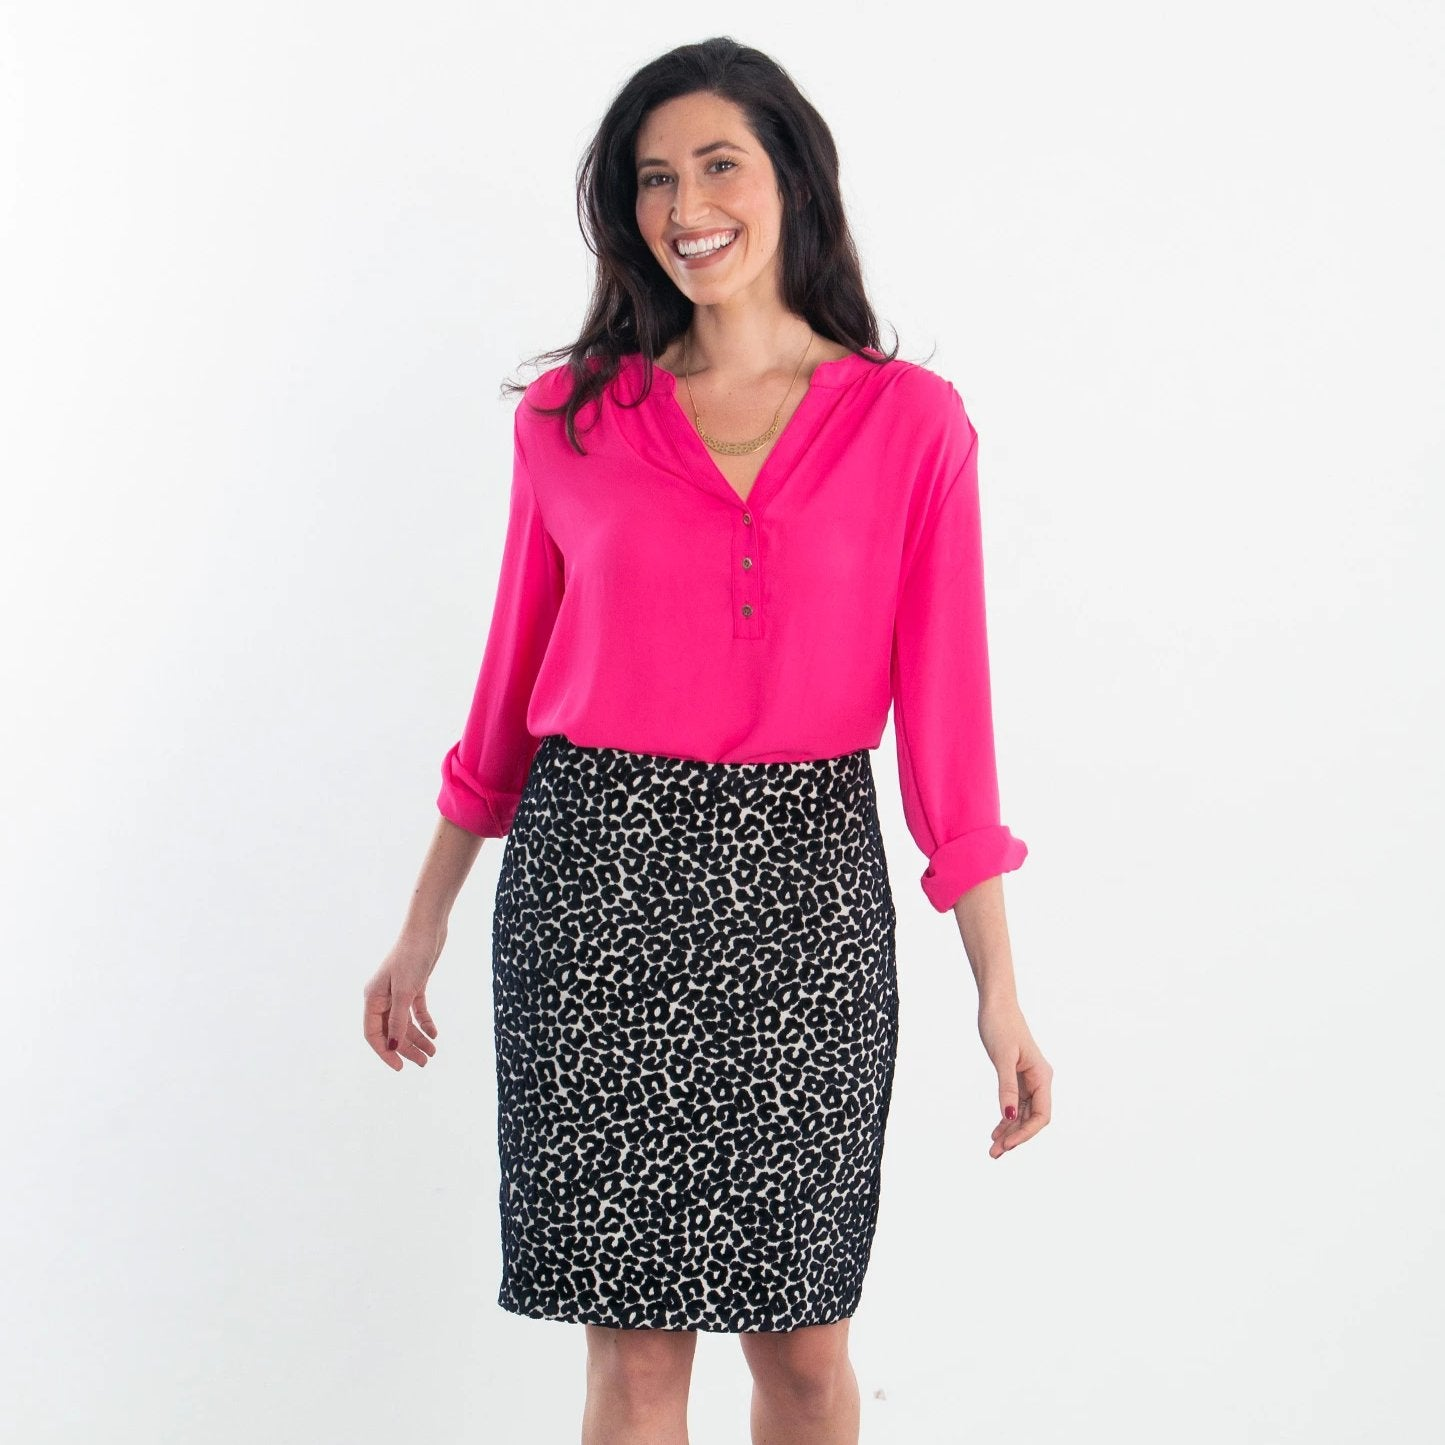 The Chenille Leopard Skirt